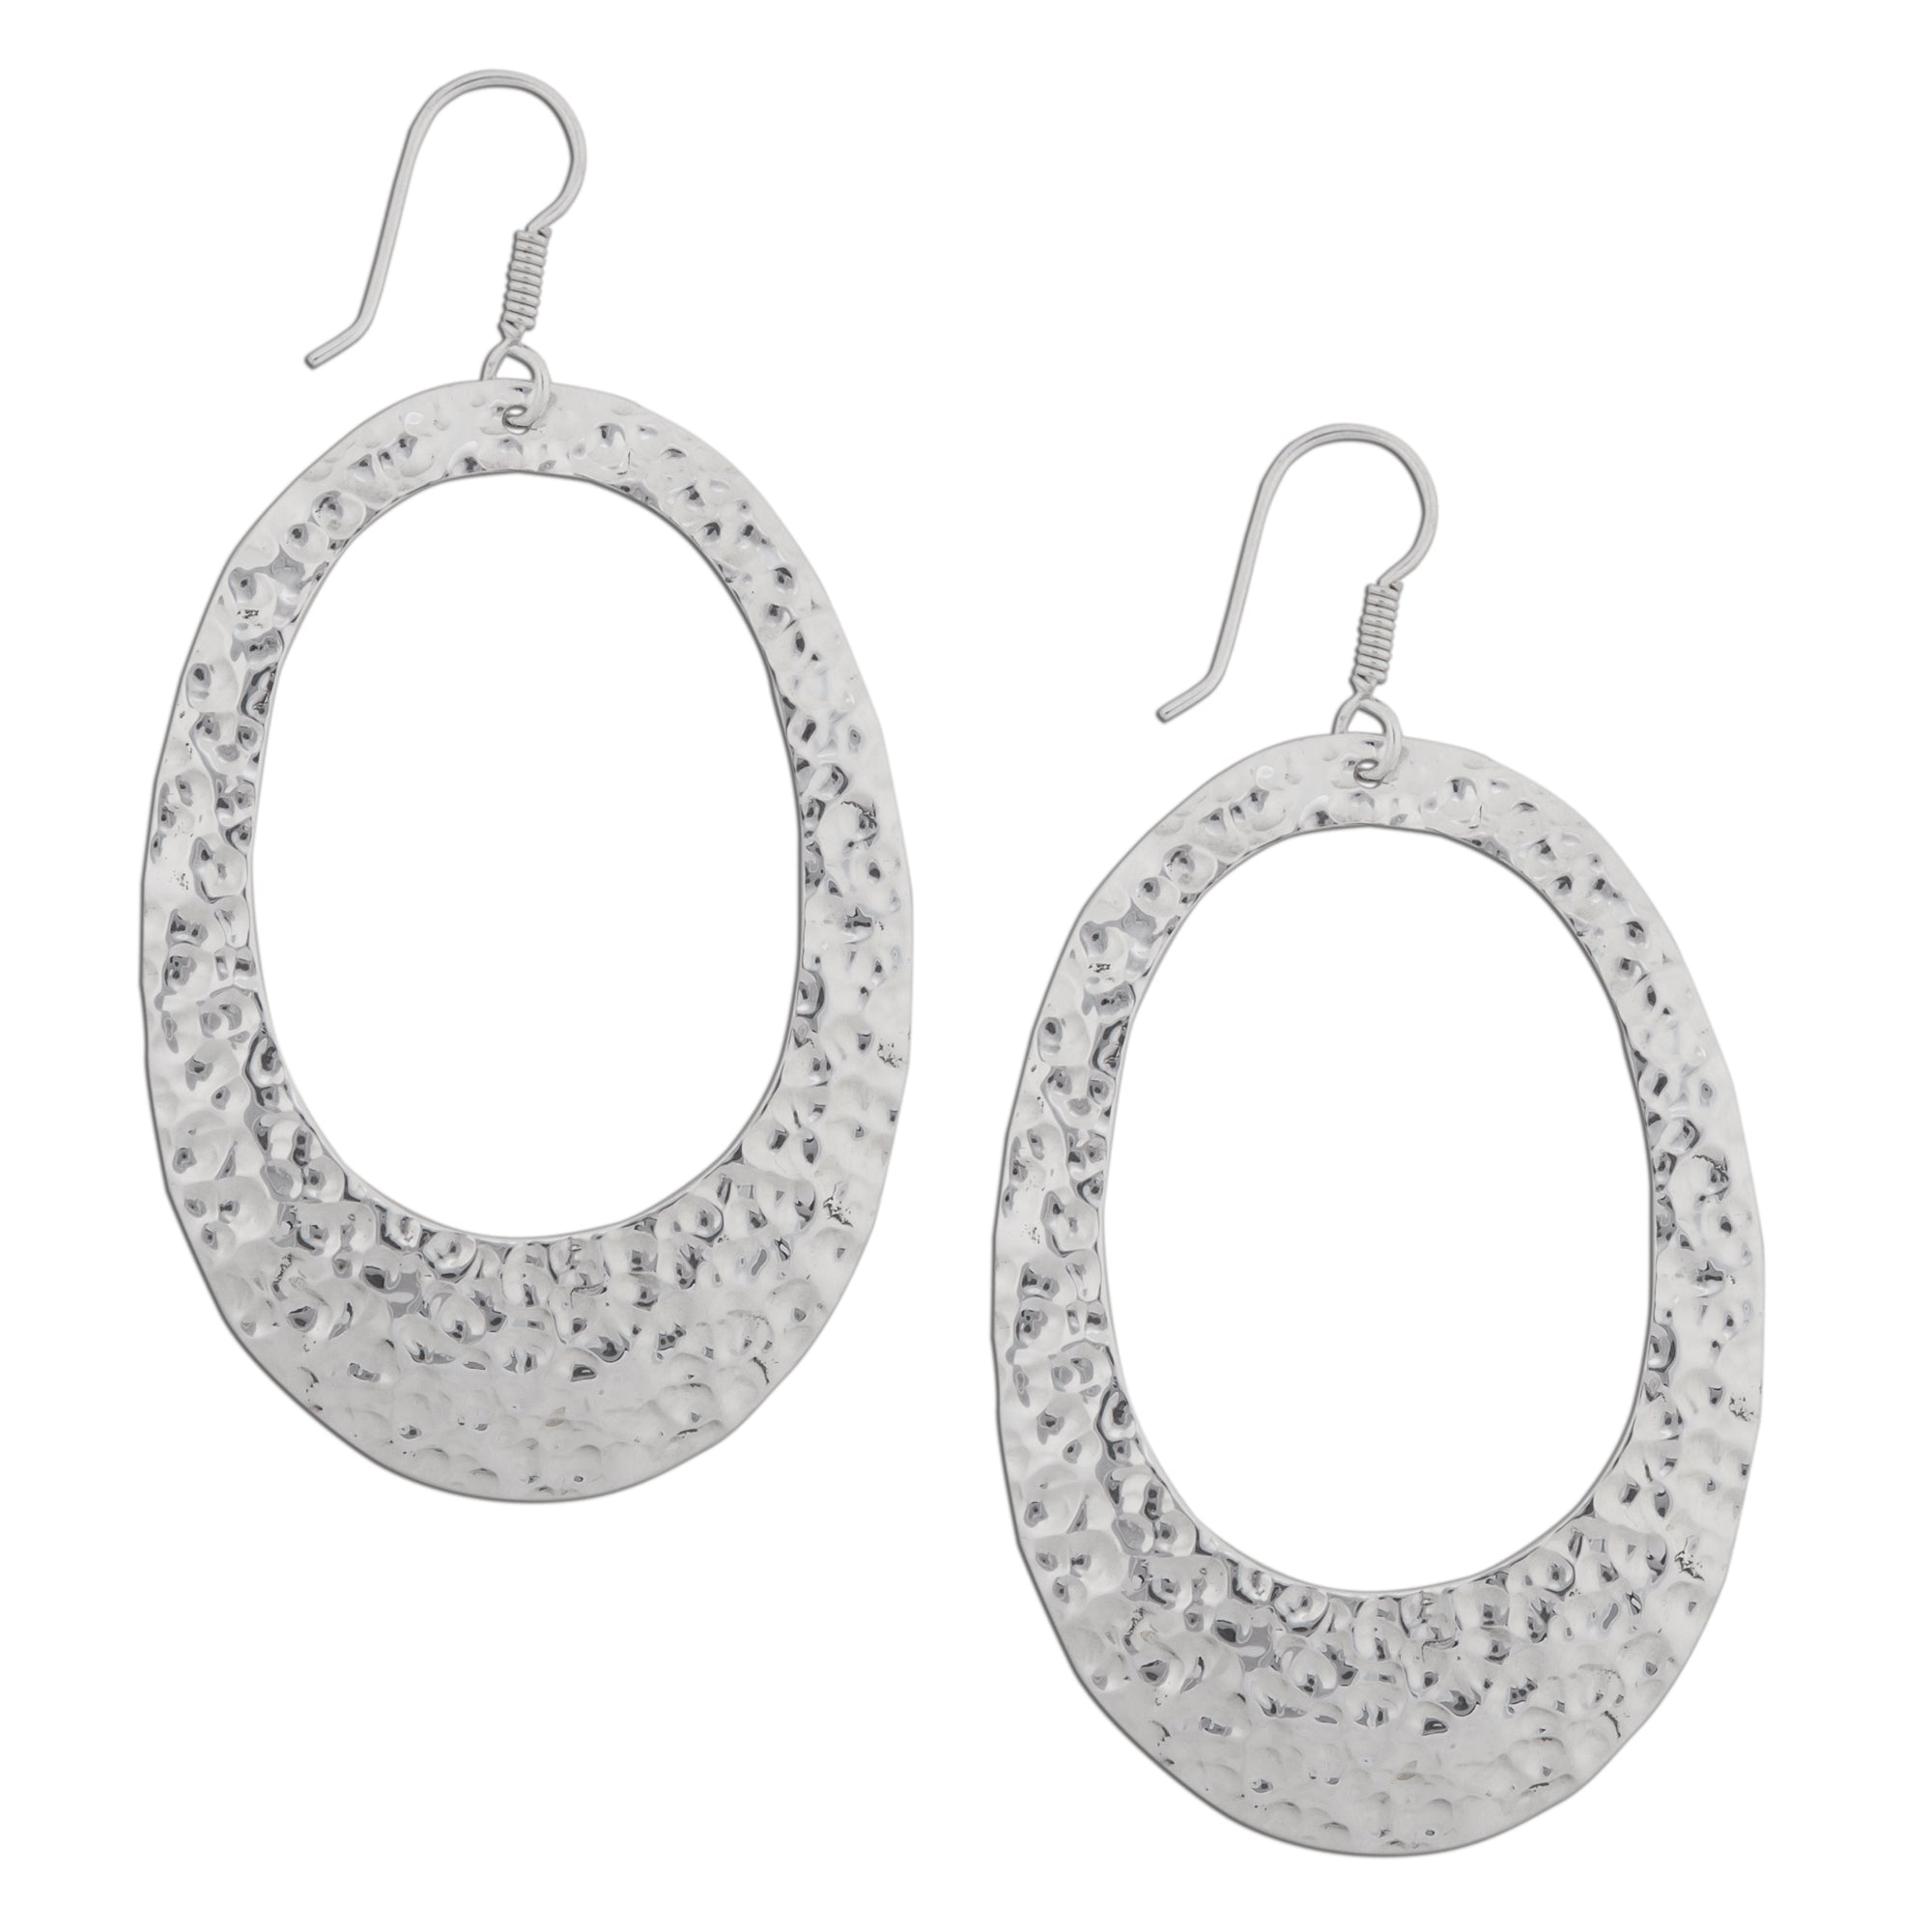 Sterling Silver Hammered Oval Earrings | Charles Albert Jewelry